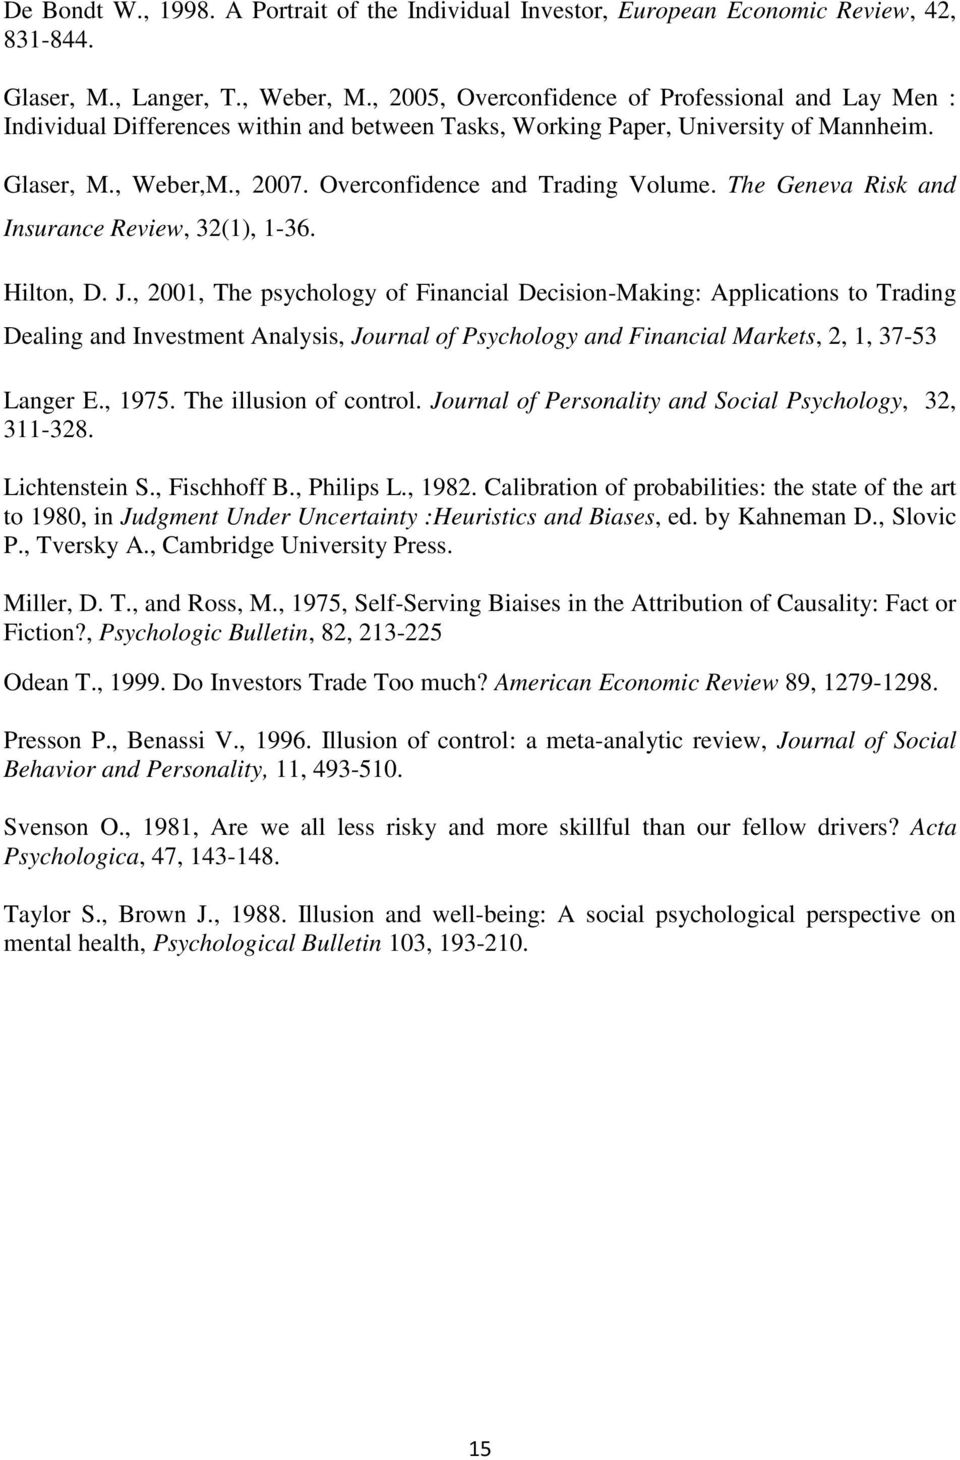 Overconfidence and Trading Volume. The Geneva Risk and Insurance Review, 32(1), 1-36. Hilton, D. J.